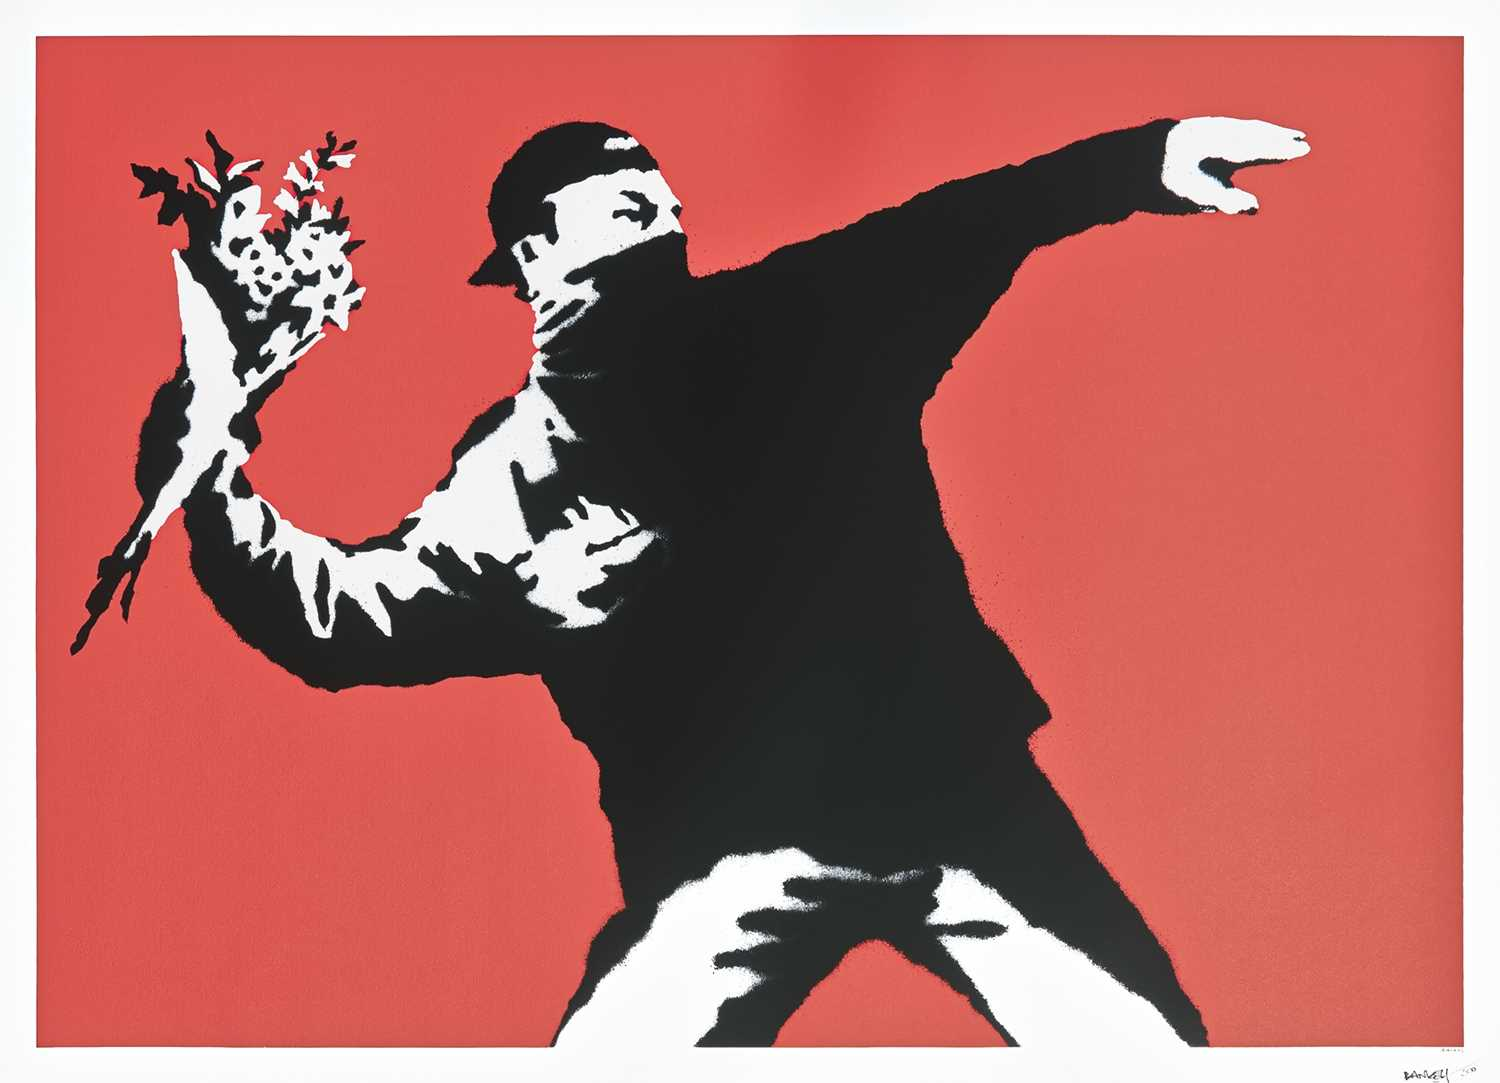 Lot 250 - Banksy (British 1974-), 'Love Is In The Air (Flower Thrower)', 2003